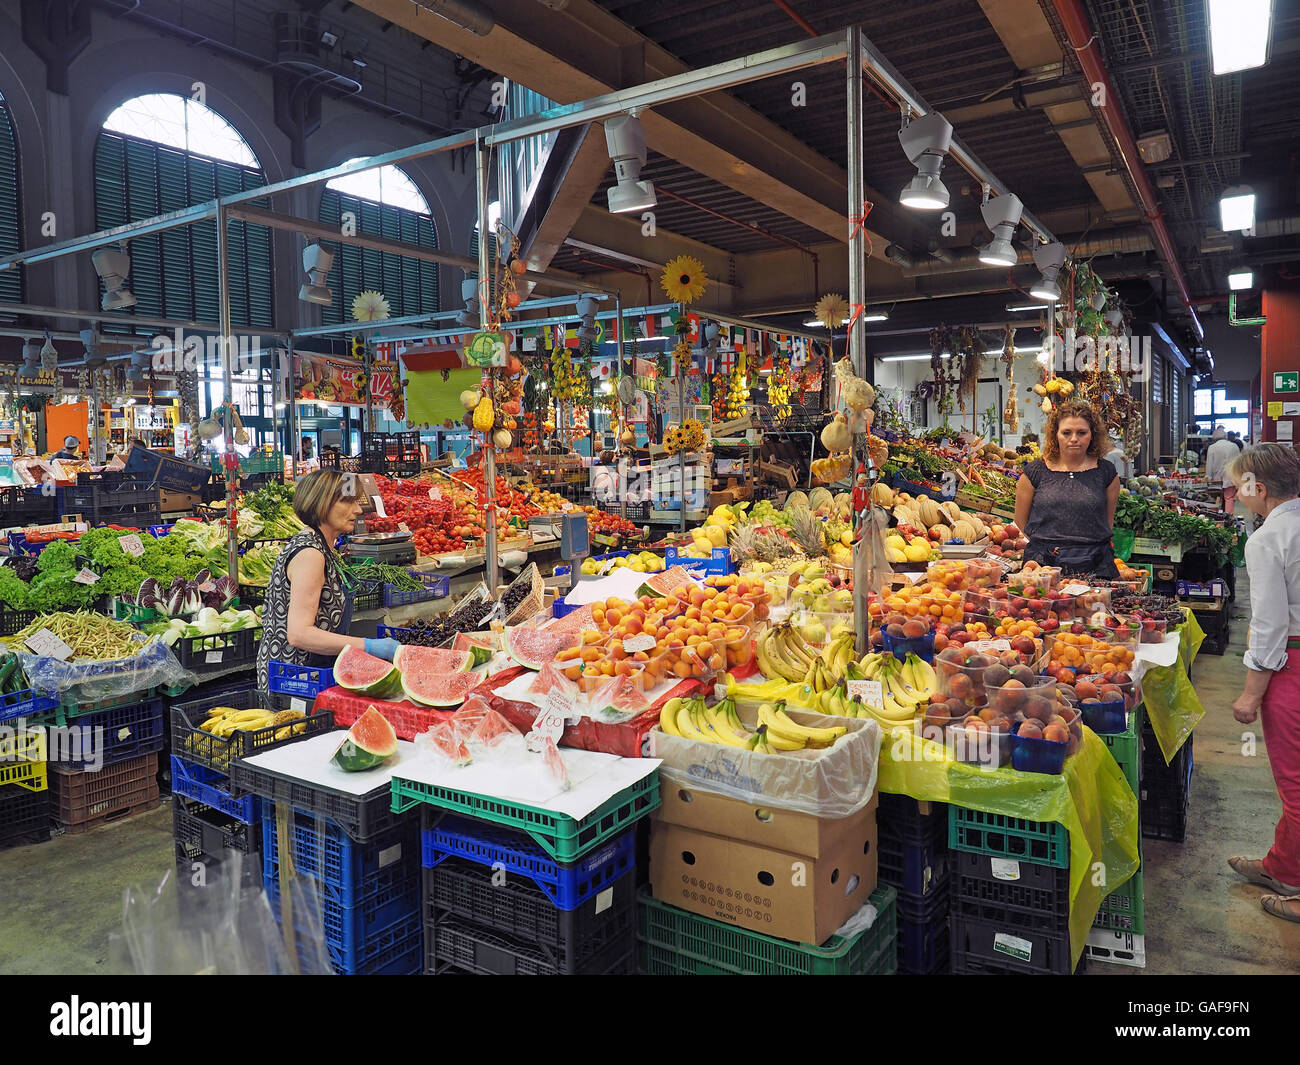 Interior view of a market stall inside the Mercato Centrale central market in the Italian city of Florence - Stock Image